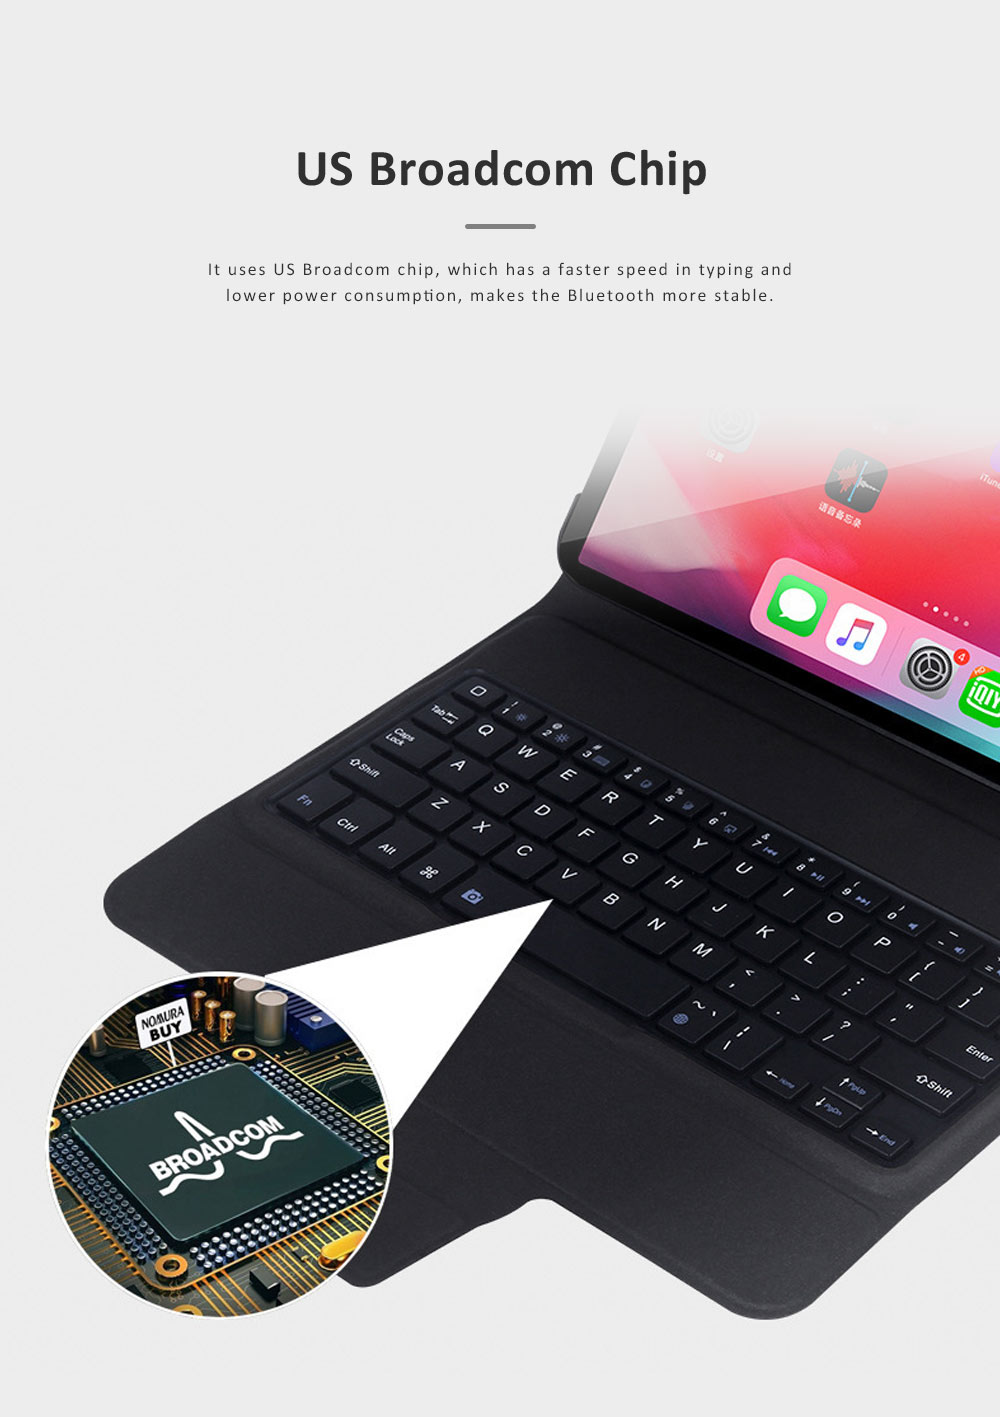 Ultra Thin Bluetooth Keyboard Case for iPad Pro 11 inches 2018, iPad Case with ABS Waterproof Keyboard for Apple iPad Pro 11 4